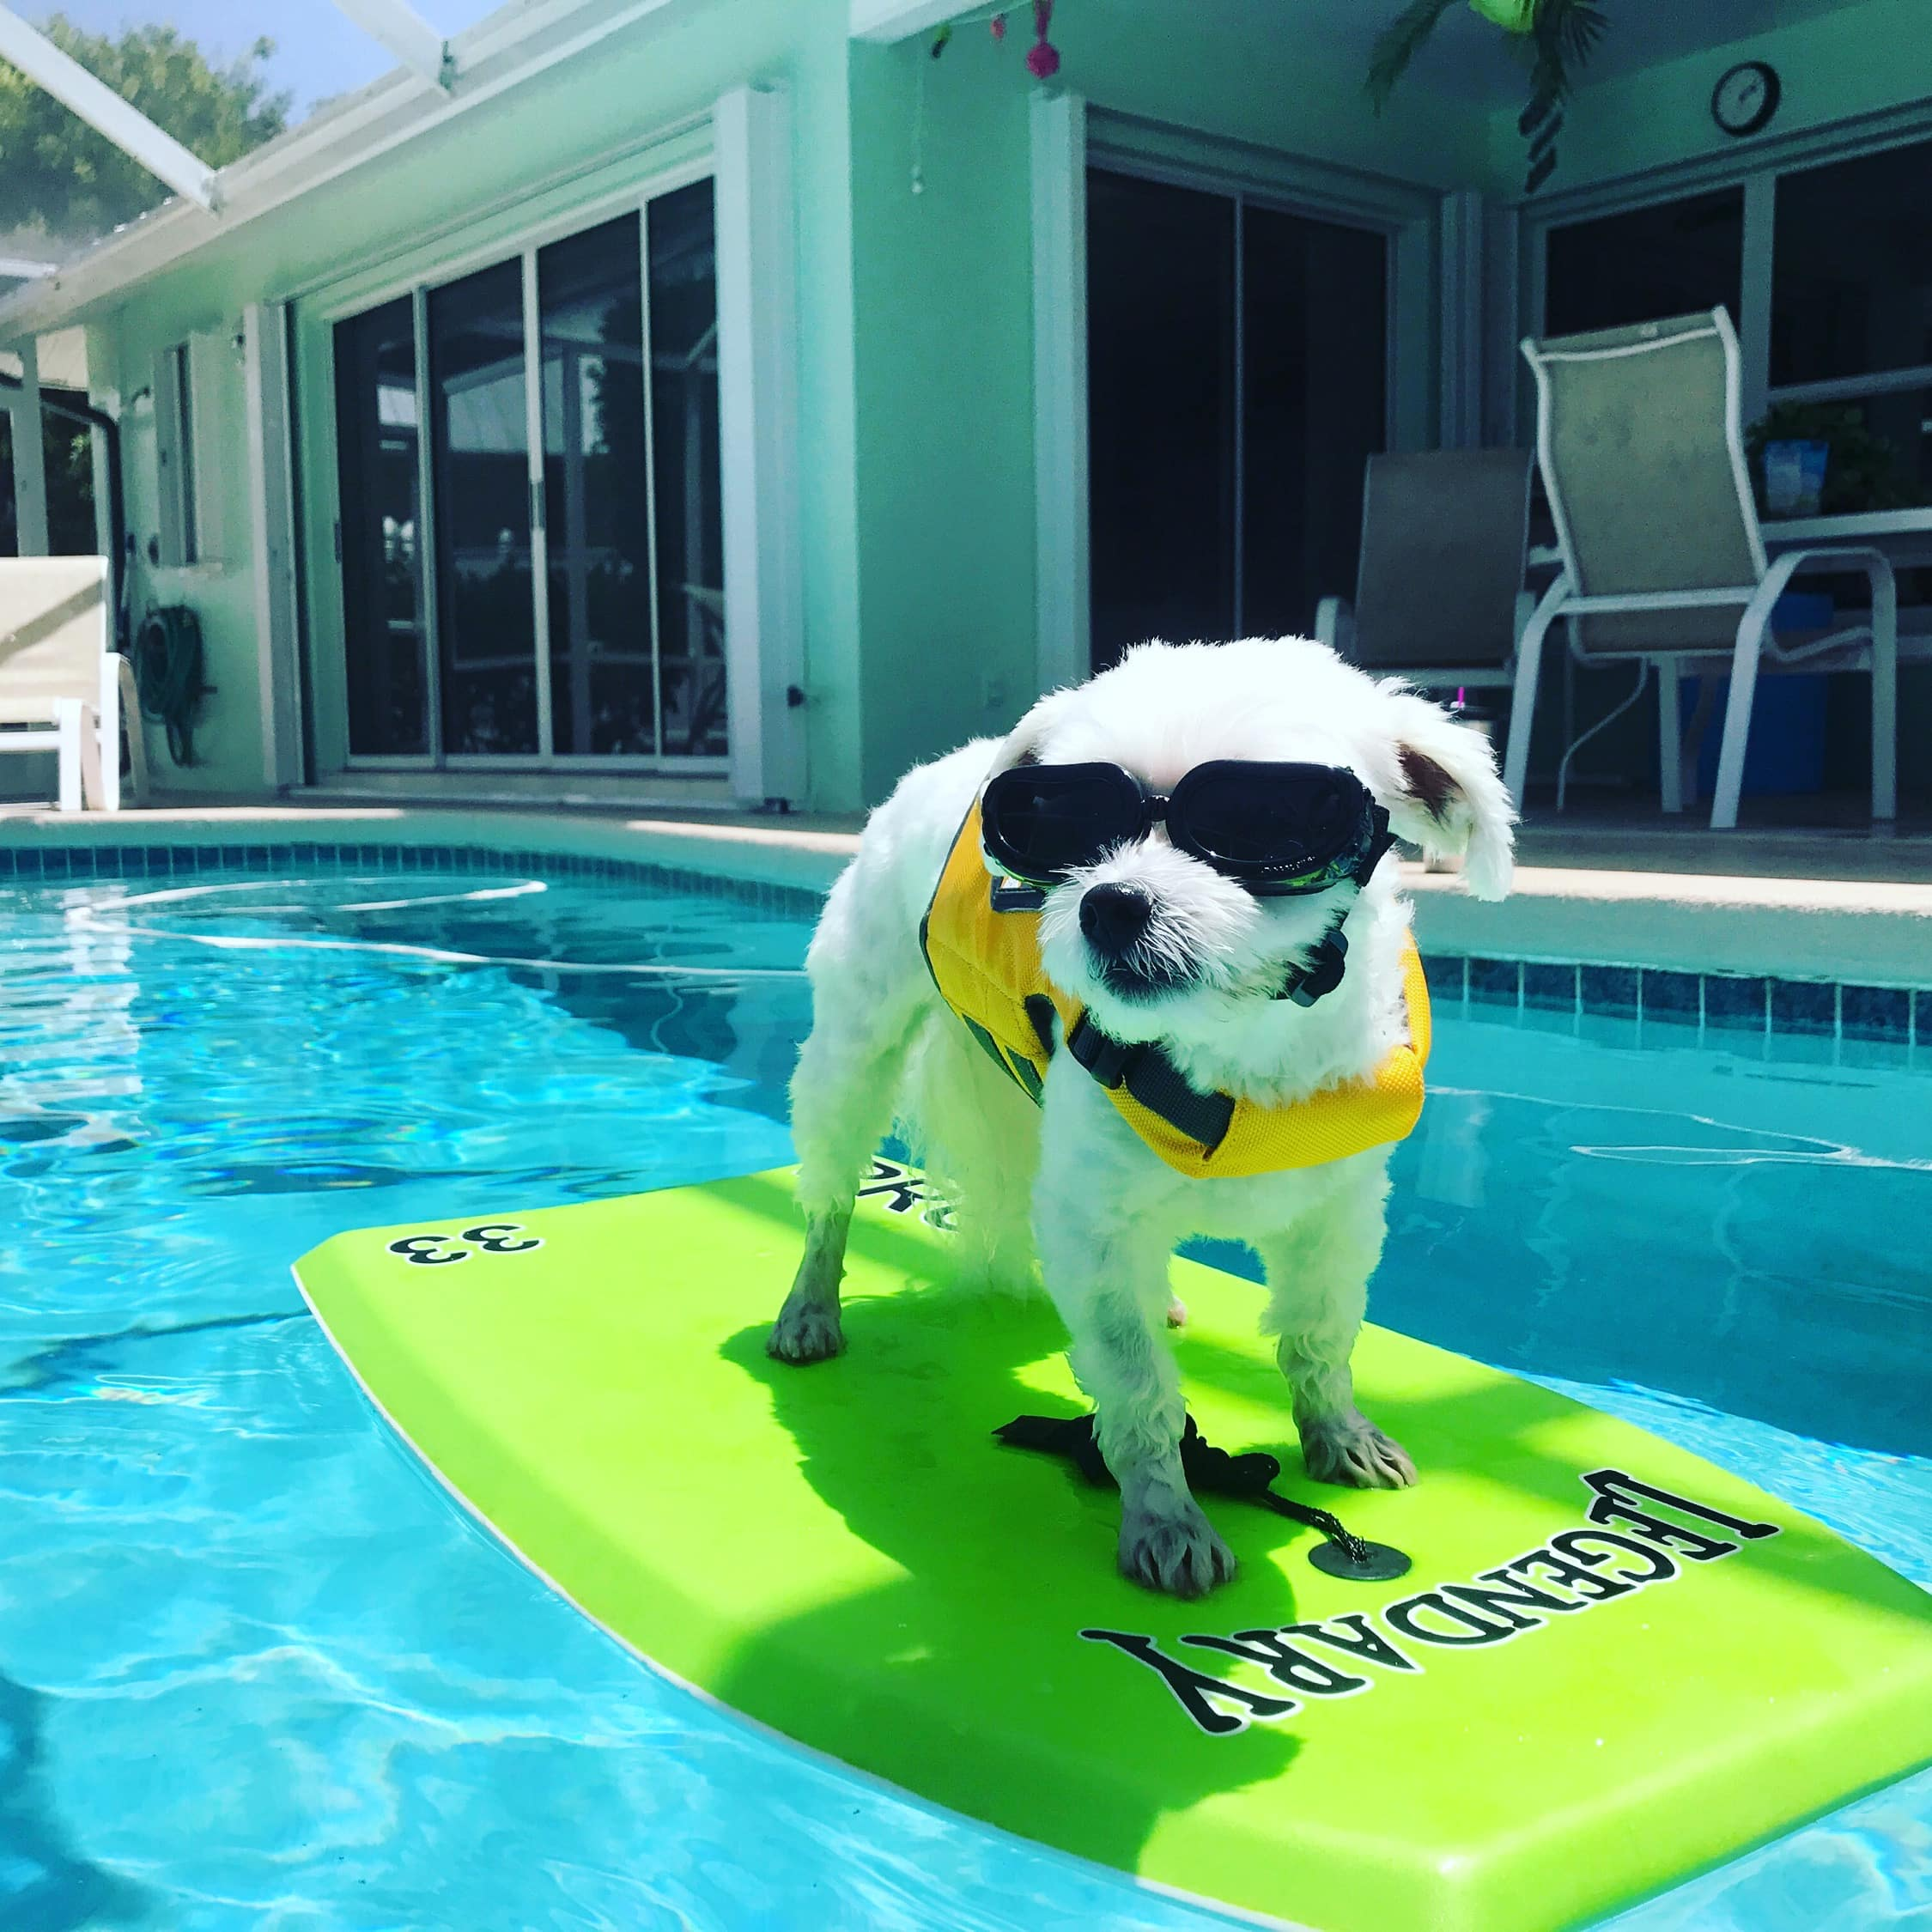 Florida Boating ~ your four-legged pet will love being on the water! Zach loves to chill out on the boogie board in the pool and in the ocean!